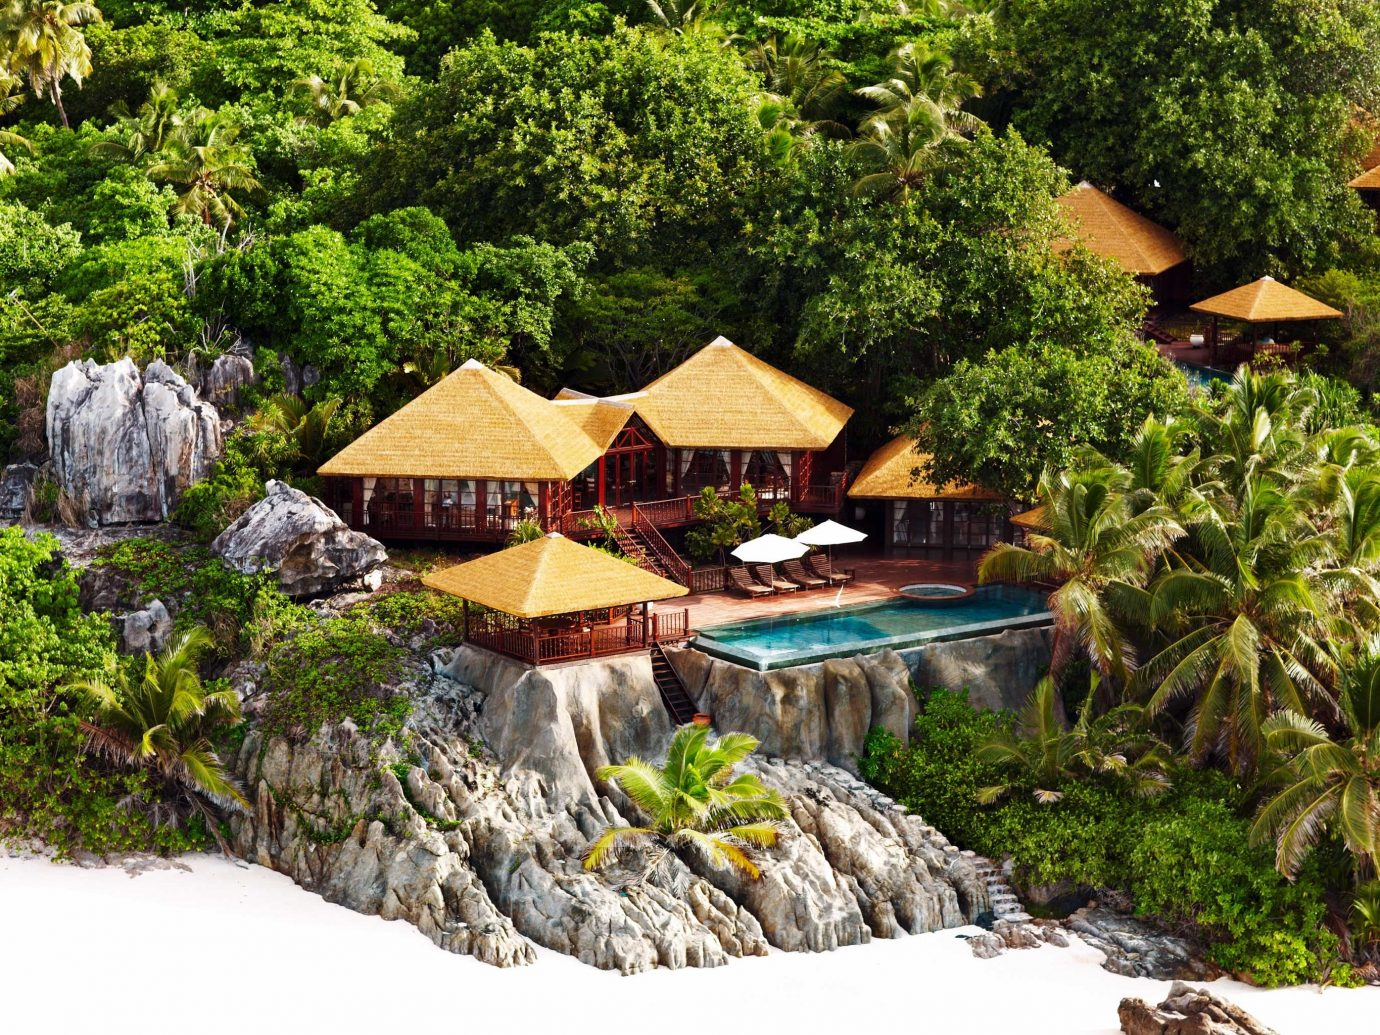 All-Inclusive Resorts Beach Beachfront Hotels Island Jungle Luxury Pool Romantic tree outdoor rock ecosystem Nature Resort Garden backyard cottage surrounded several